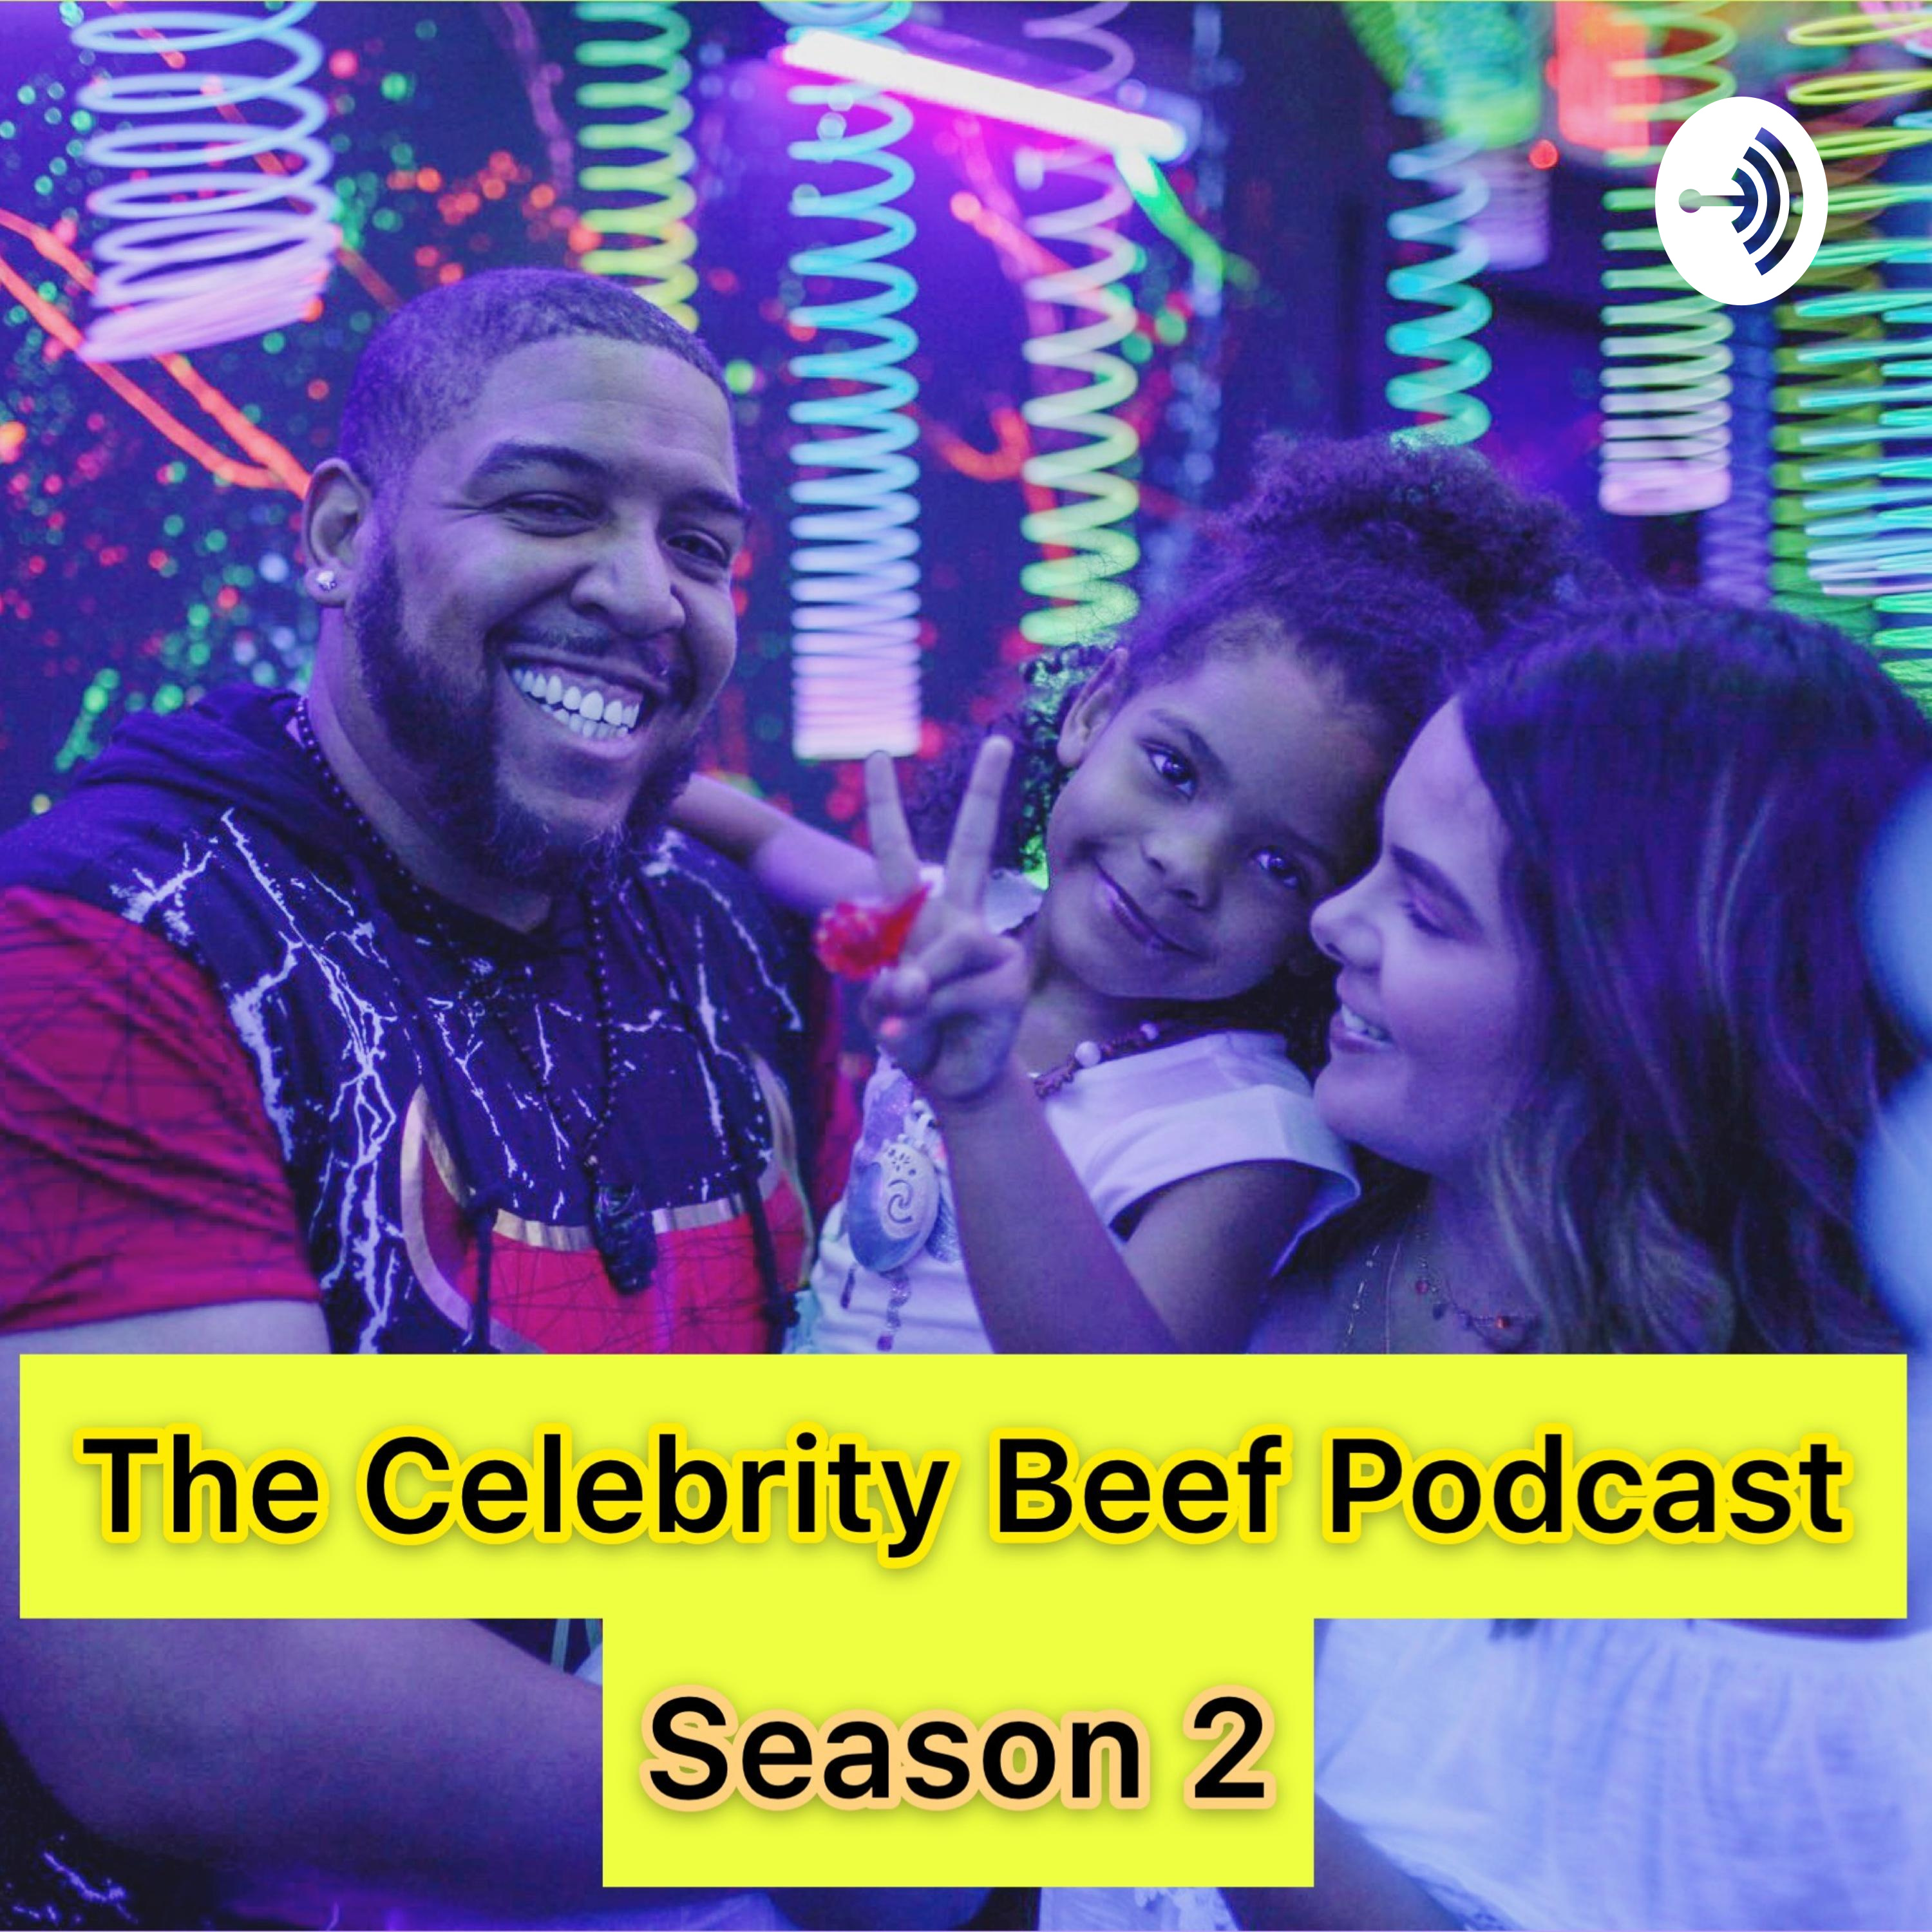 The Celebrity Beef Podcast | Listen Free on Castbox